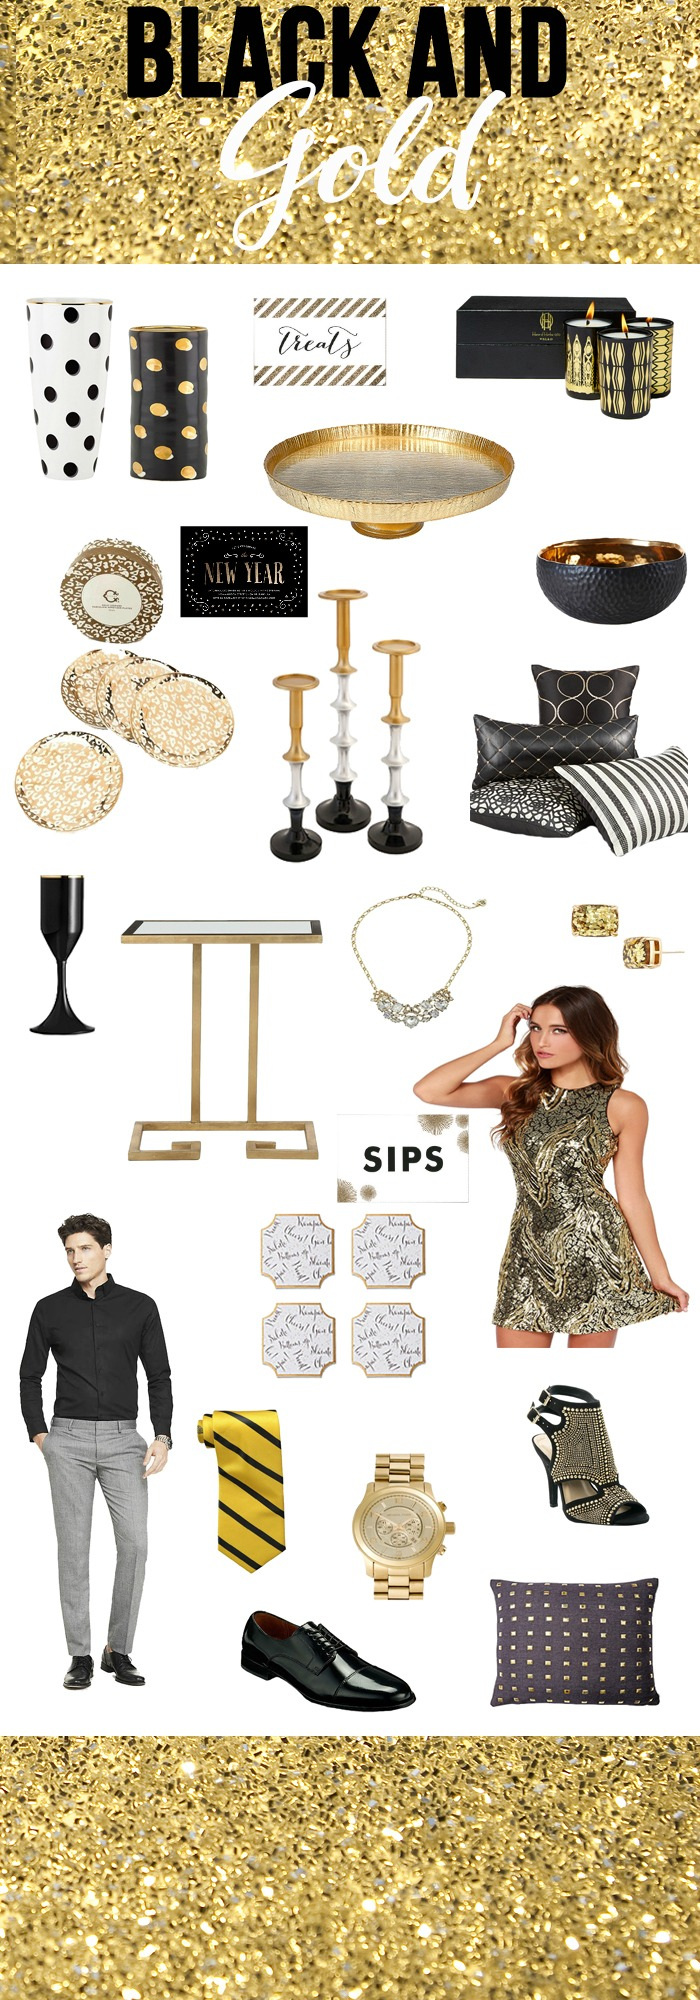 Looking for a fun NYE Party Idea? How about a Black and Gold Themed NYE?